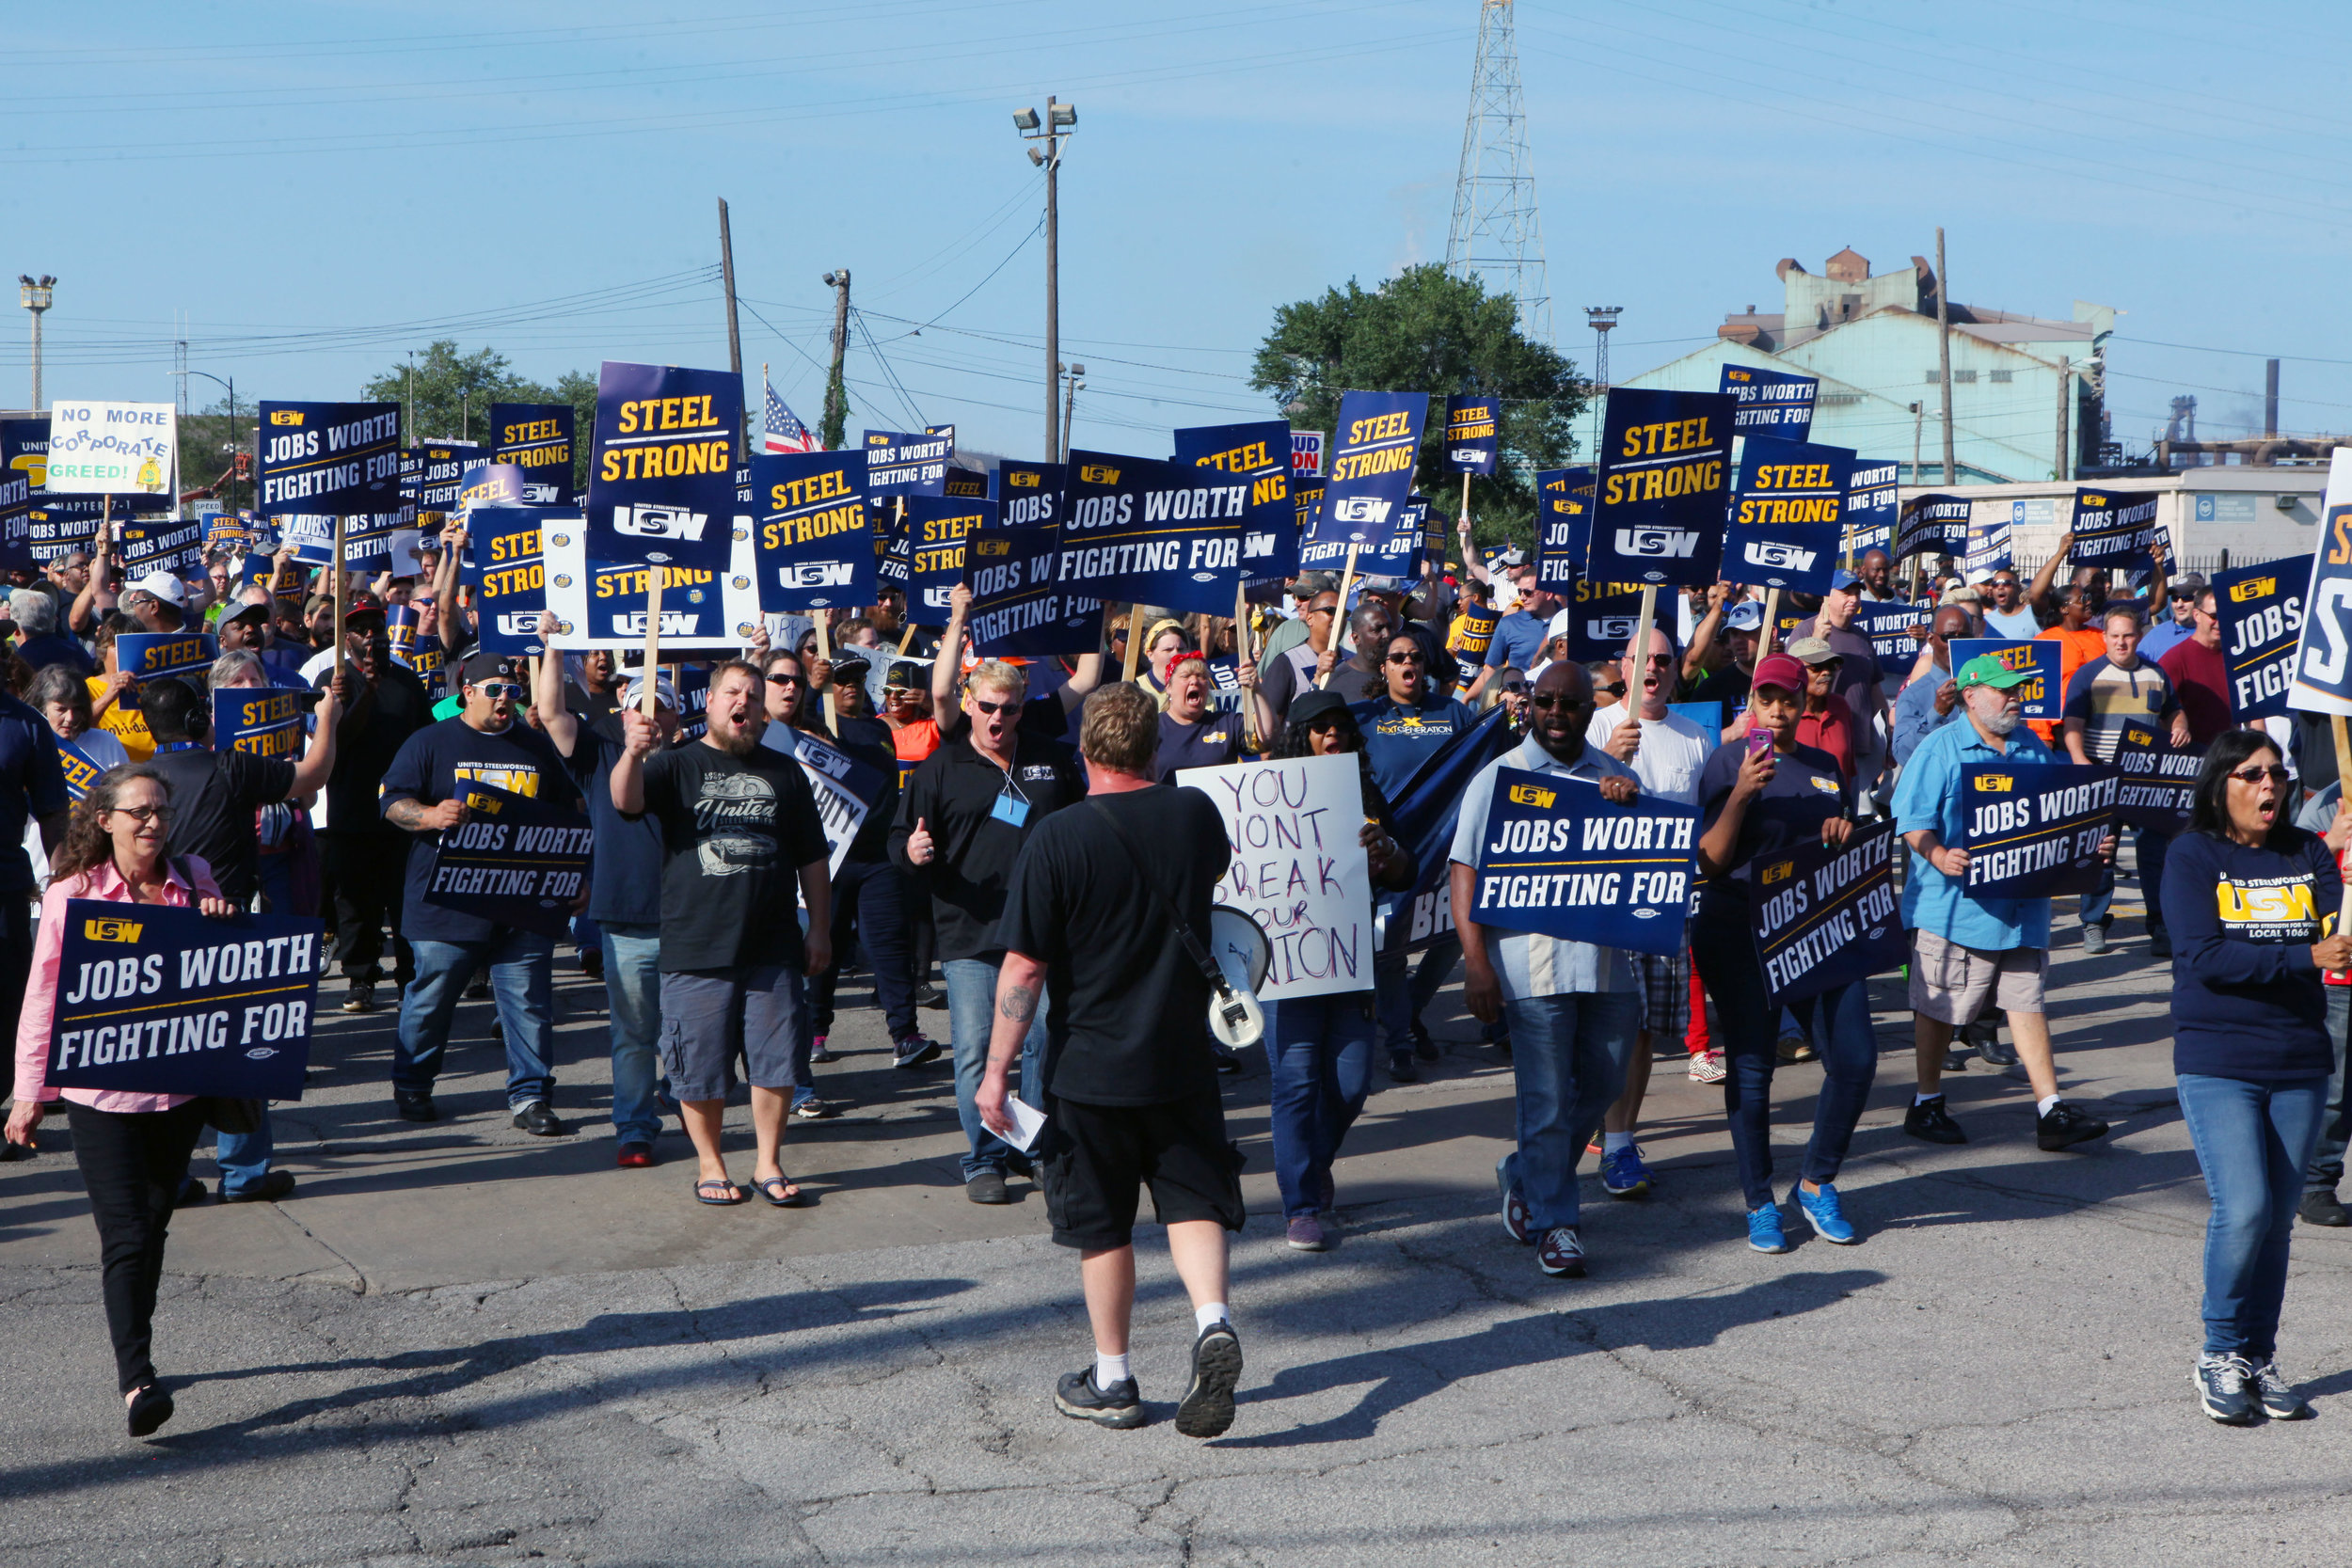 Steelworkers march and rally together outside of U.S. Steel Gary Works.